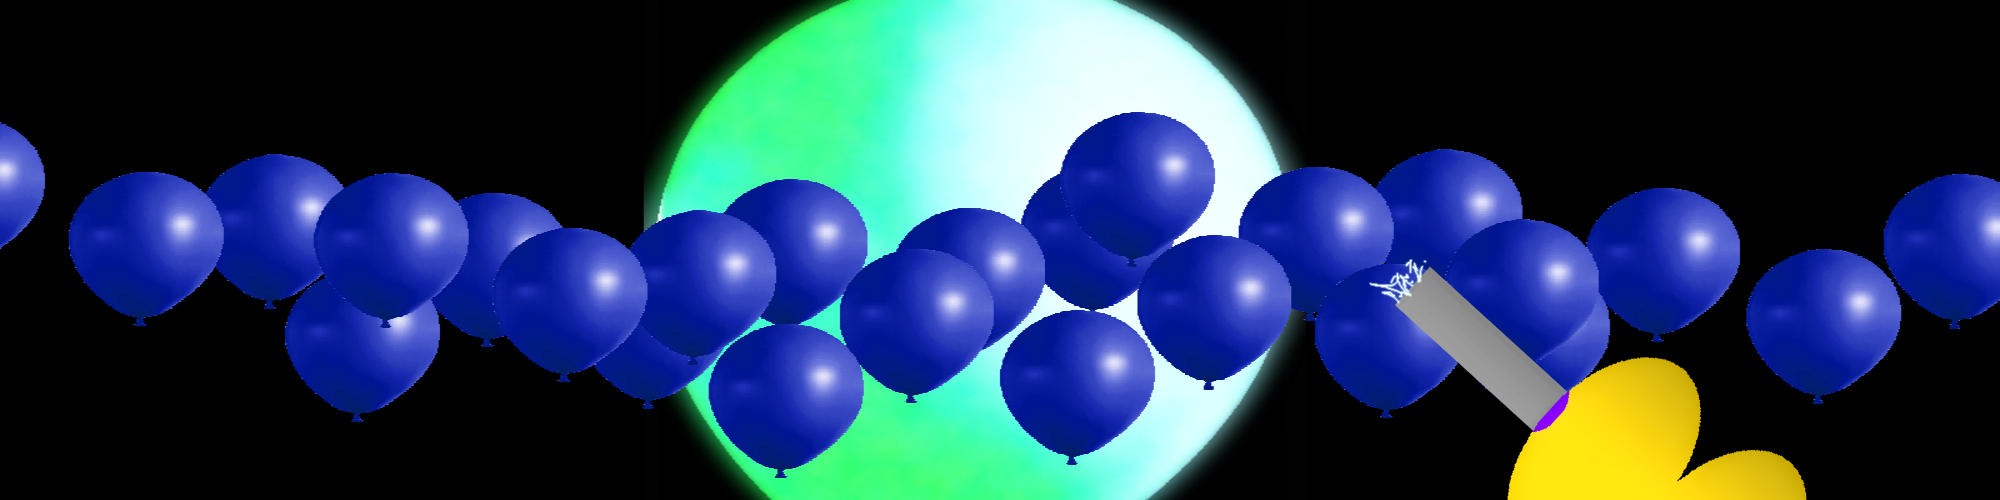 BALOON GENOCIDE